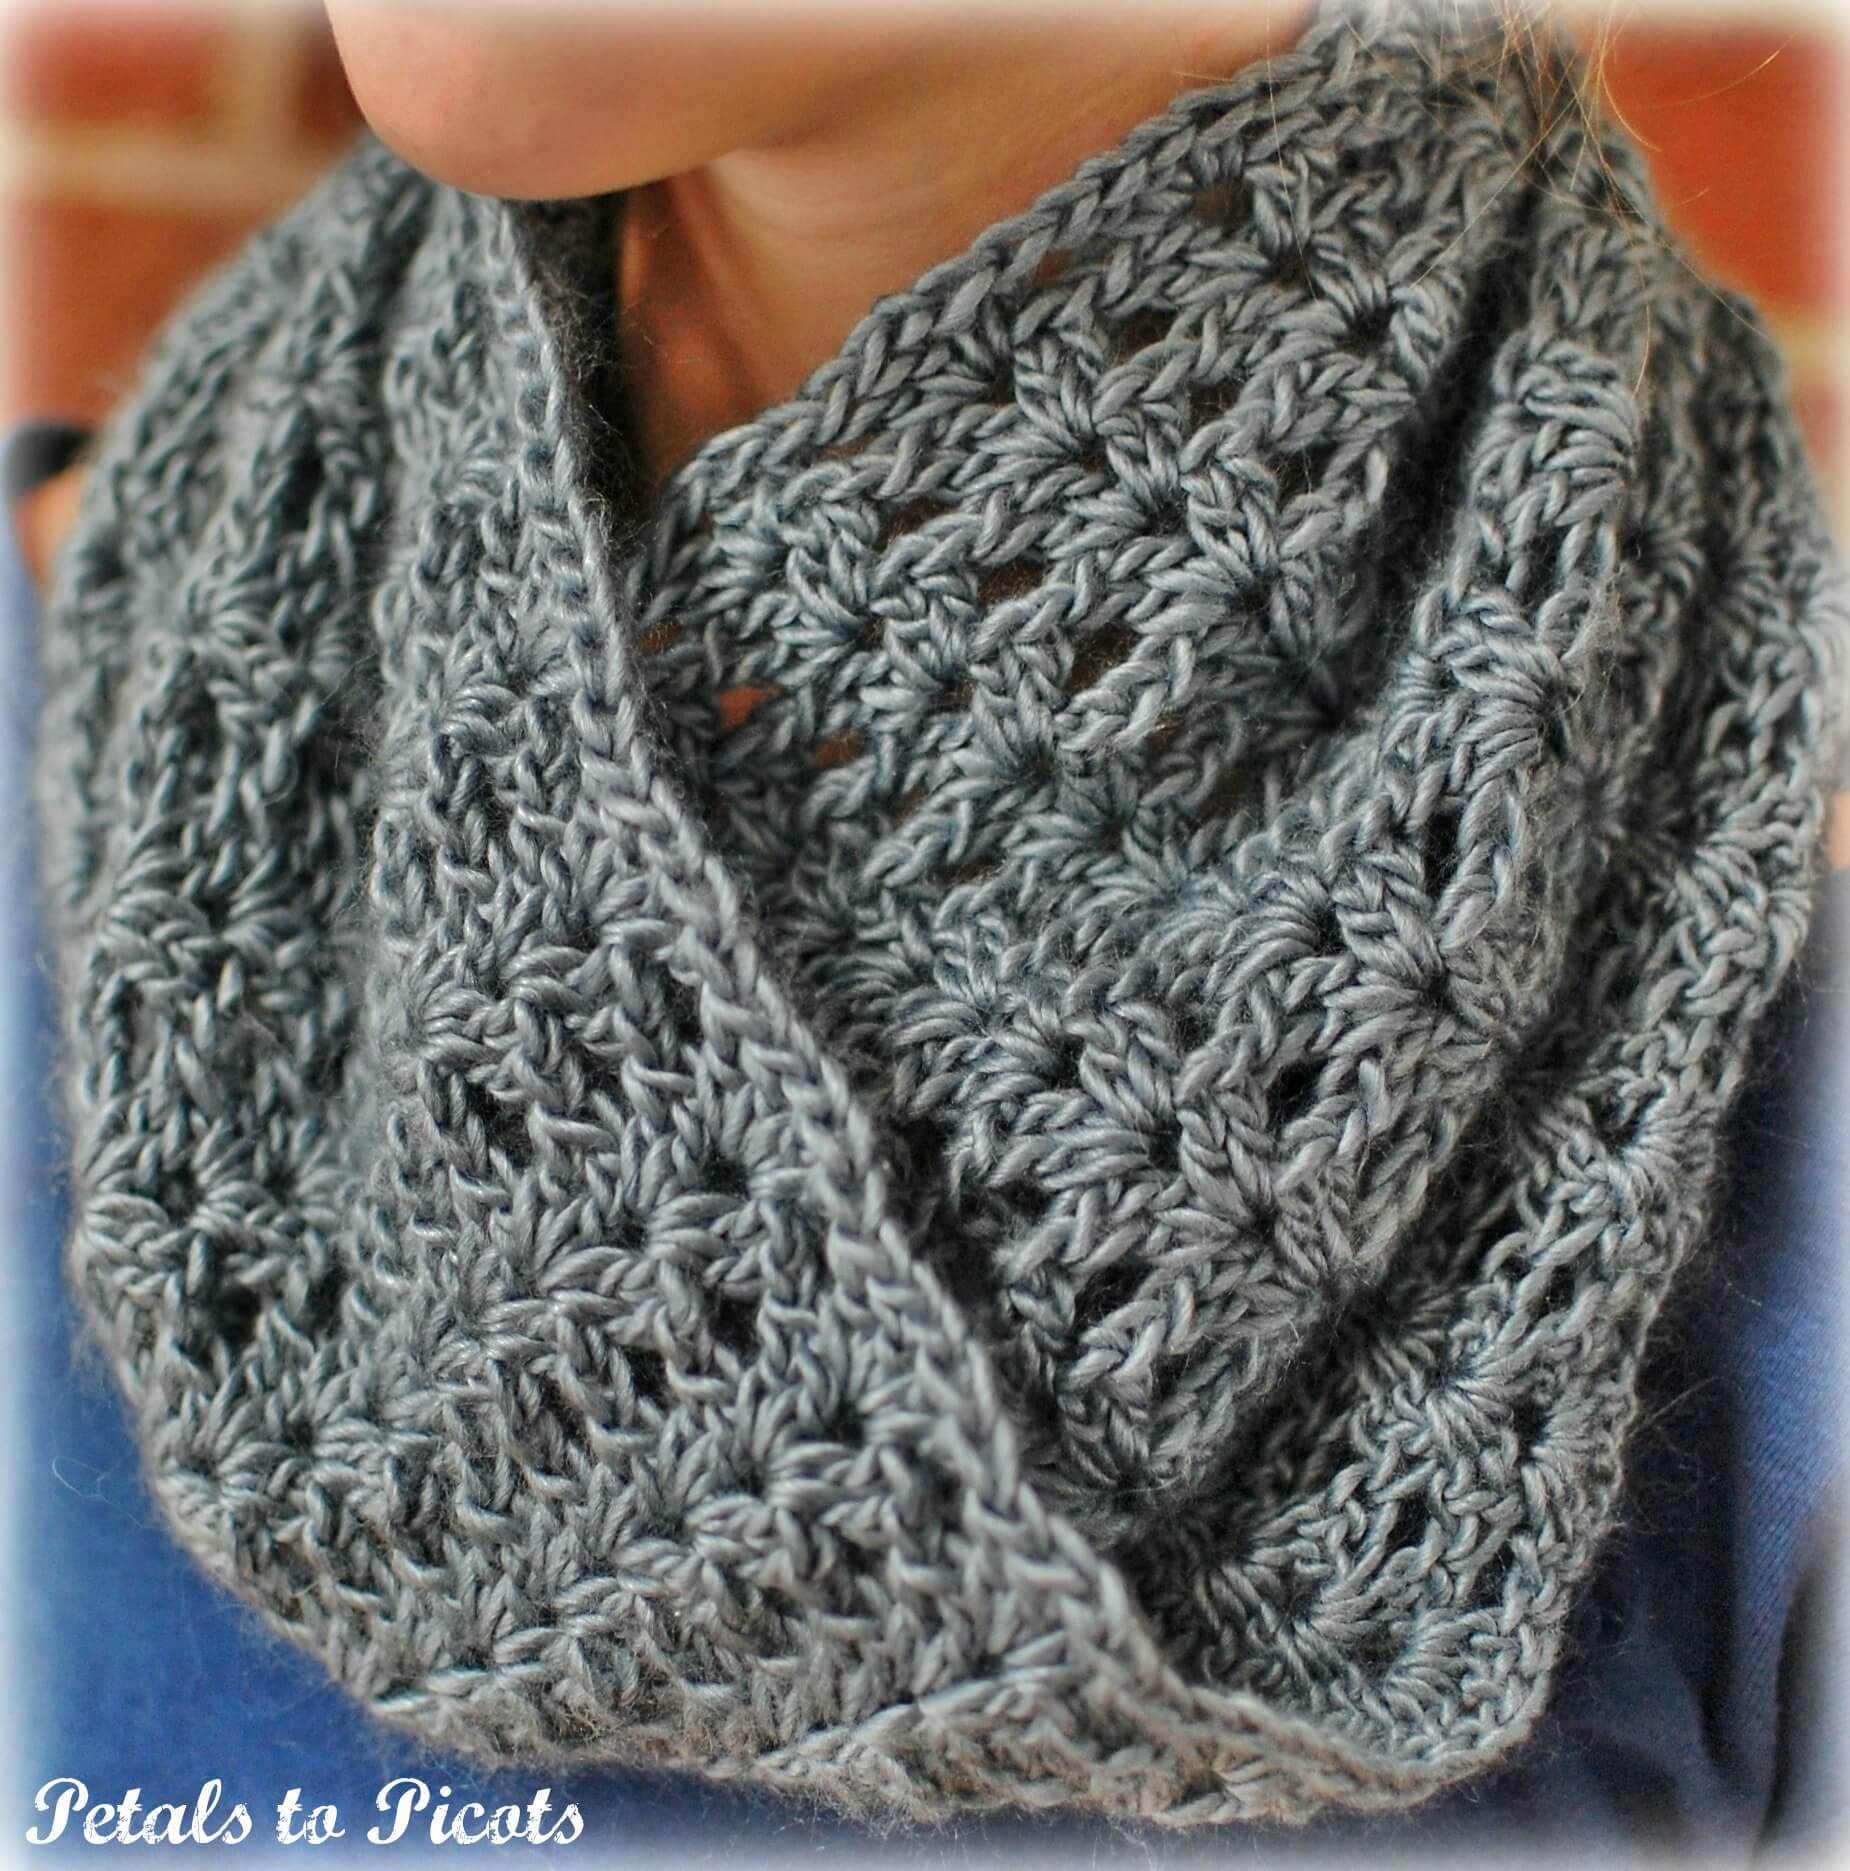 Free crochet pattern for mobius cowl manet for mobius infinity cowl scarf petals to picots free crochet pattern bankloansurffo Gallery